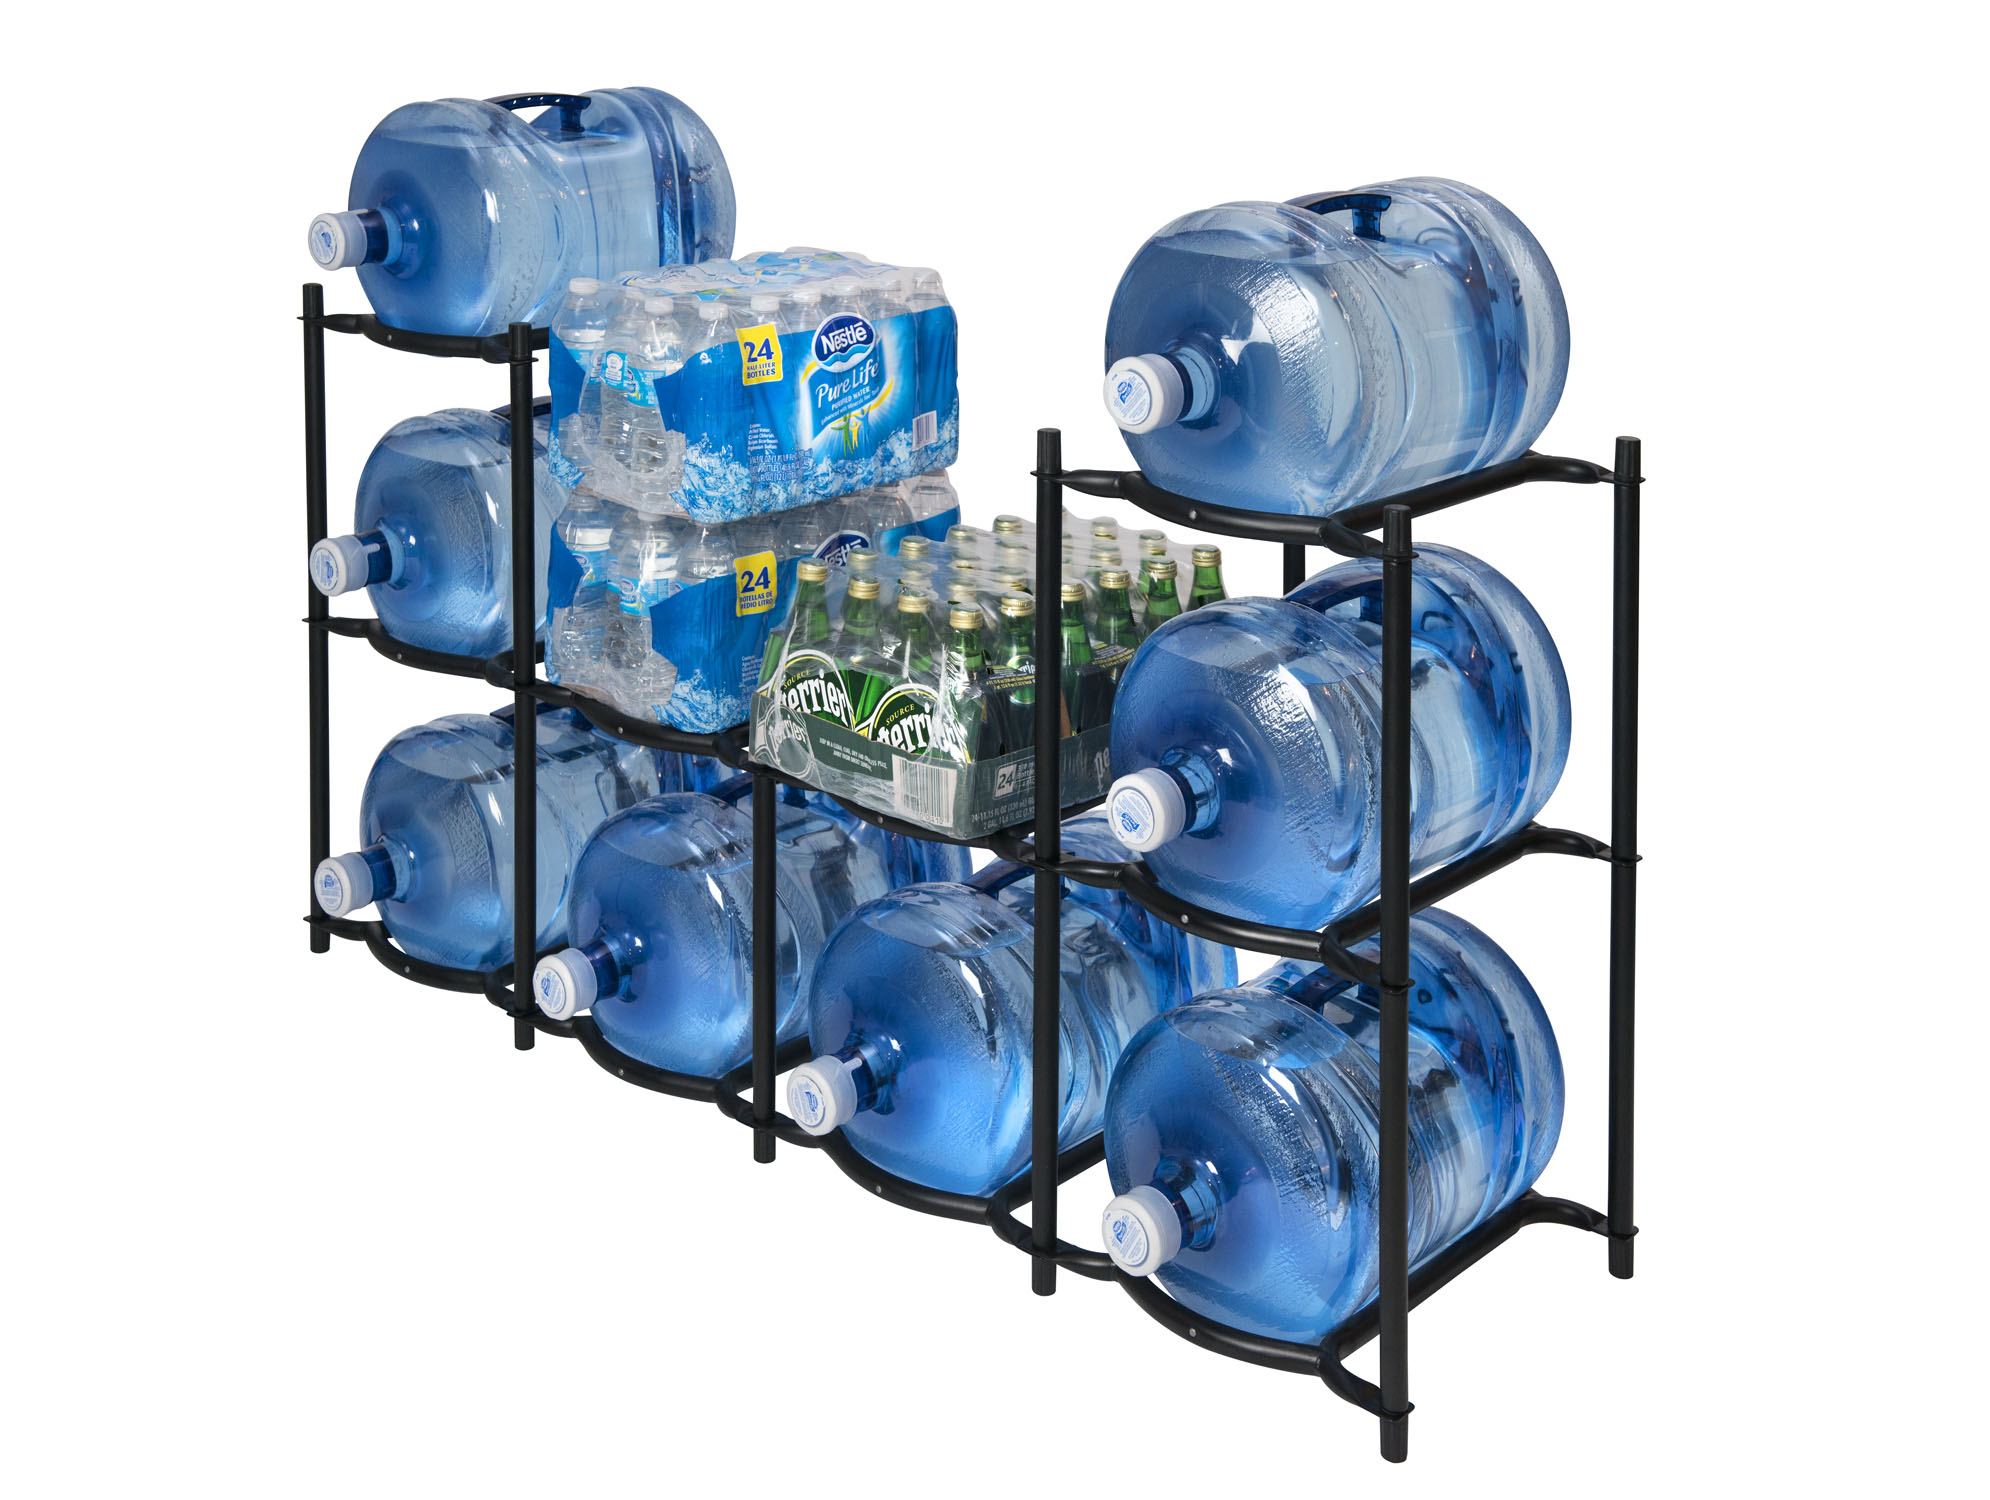 Modular Bottle Racks